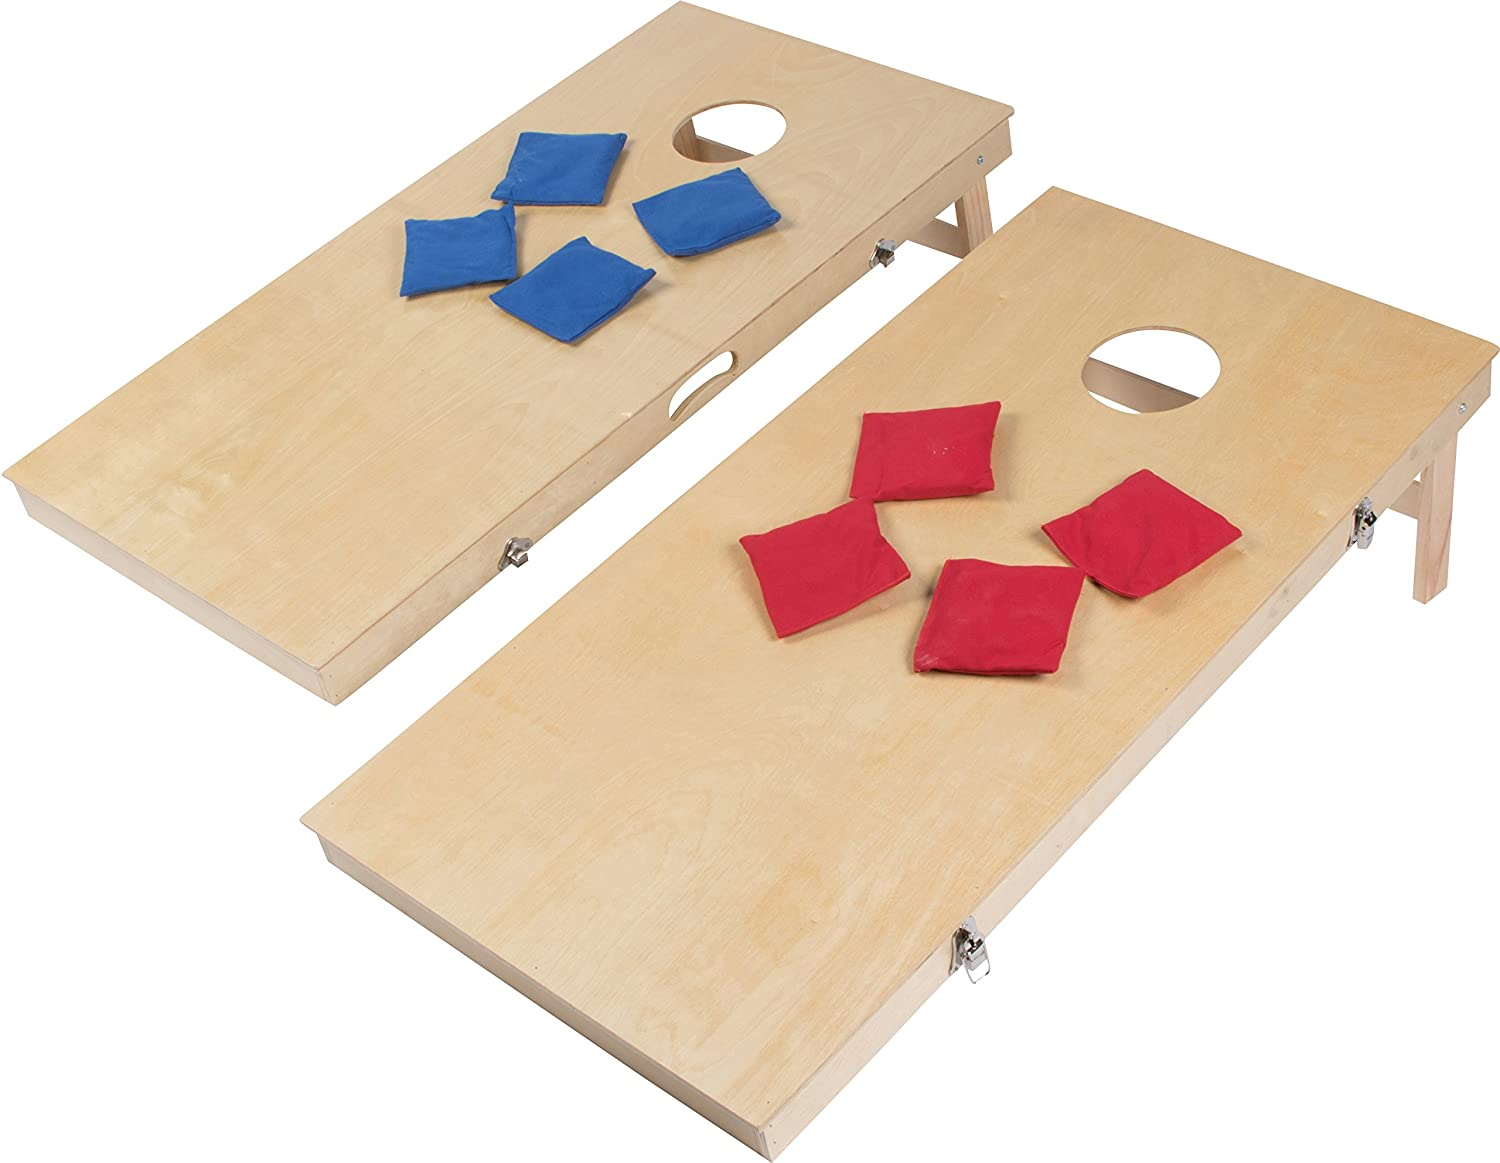 Miraculous Simply Sports 4 Corn Hole Bean Bag Toss Set With Solid Pine Wood Frame And Built In Carry Handle Evergreenethics Interior Chair Design Evergreenethicsorg